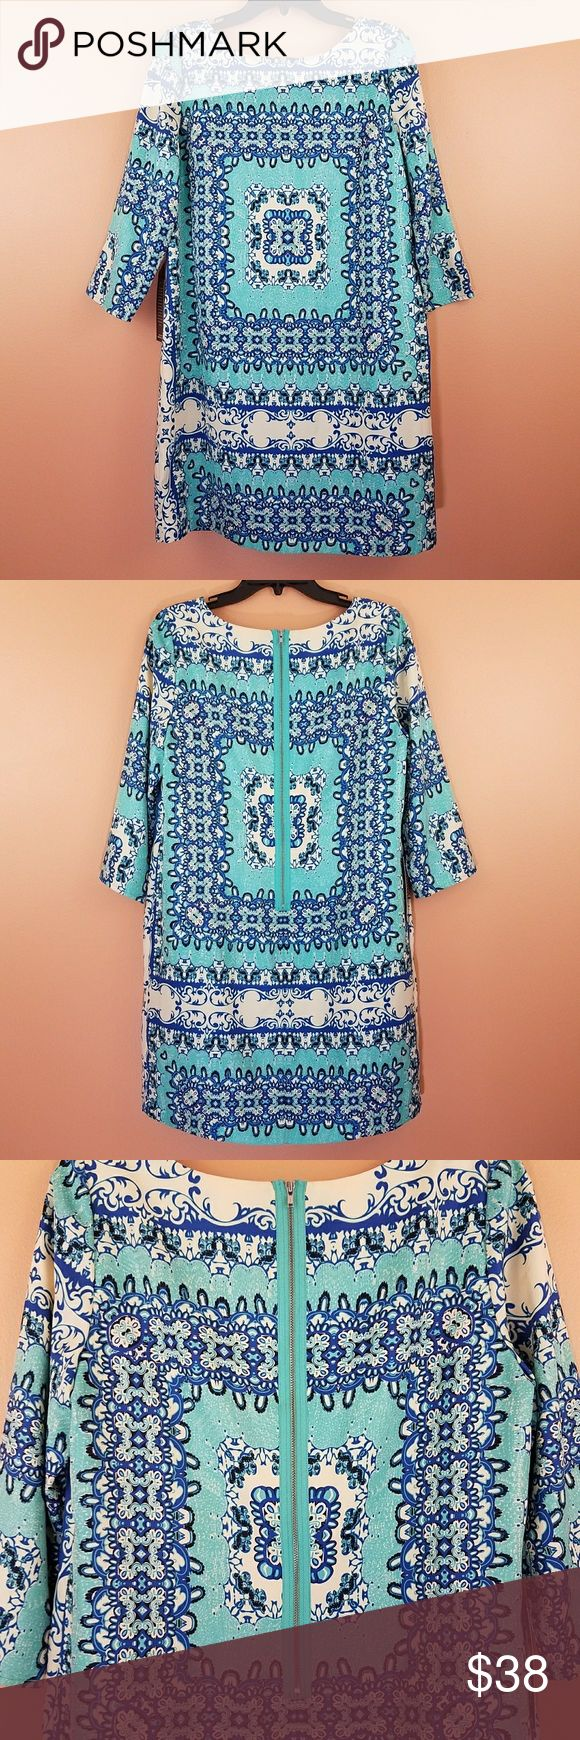 The Limited Shift Dress NWT shift dress from The Limited. Beautiful aqua base color, blue, black, and cream. Exposed zip back to add interest, 3/4 sleeve, flattering silhouette. 100% polyester. Size M. Approx measurements: 20in bust; 34in length. The Limited Dresses